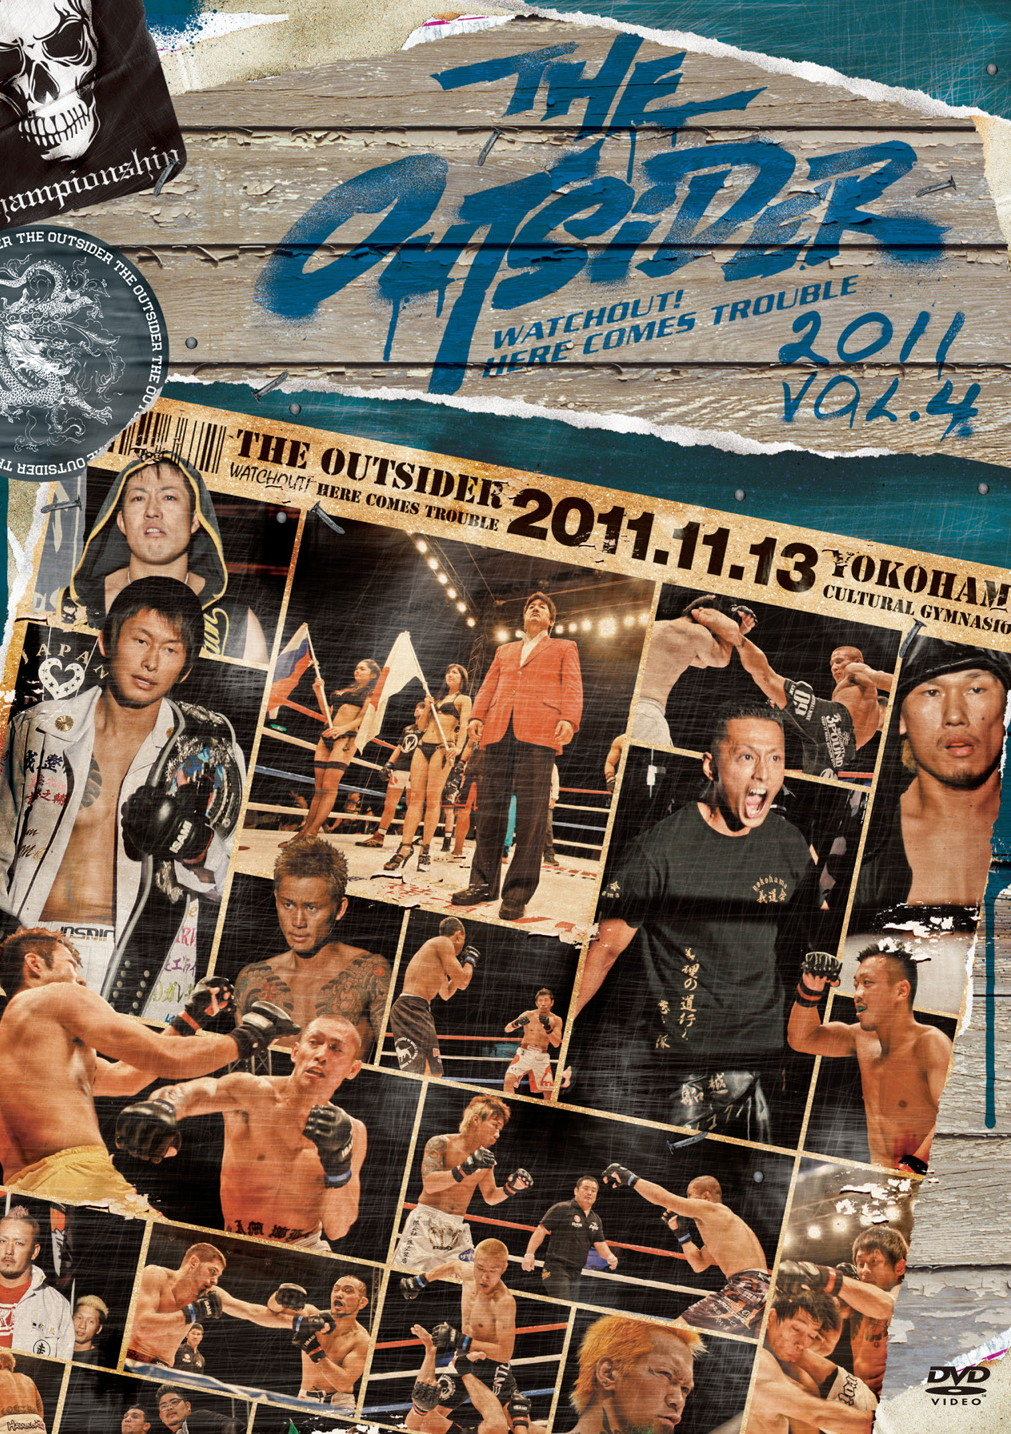 DVD「THE OUTSIDER 2011 vol4」.jpg